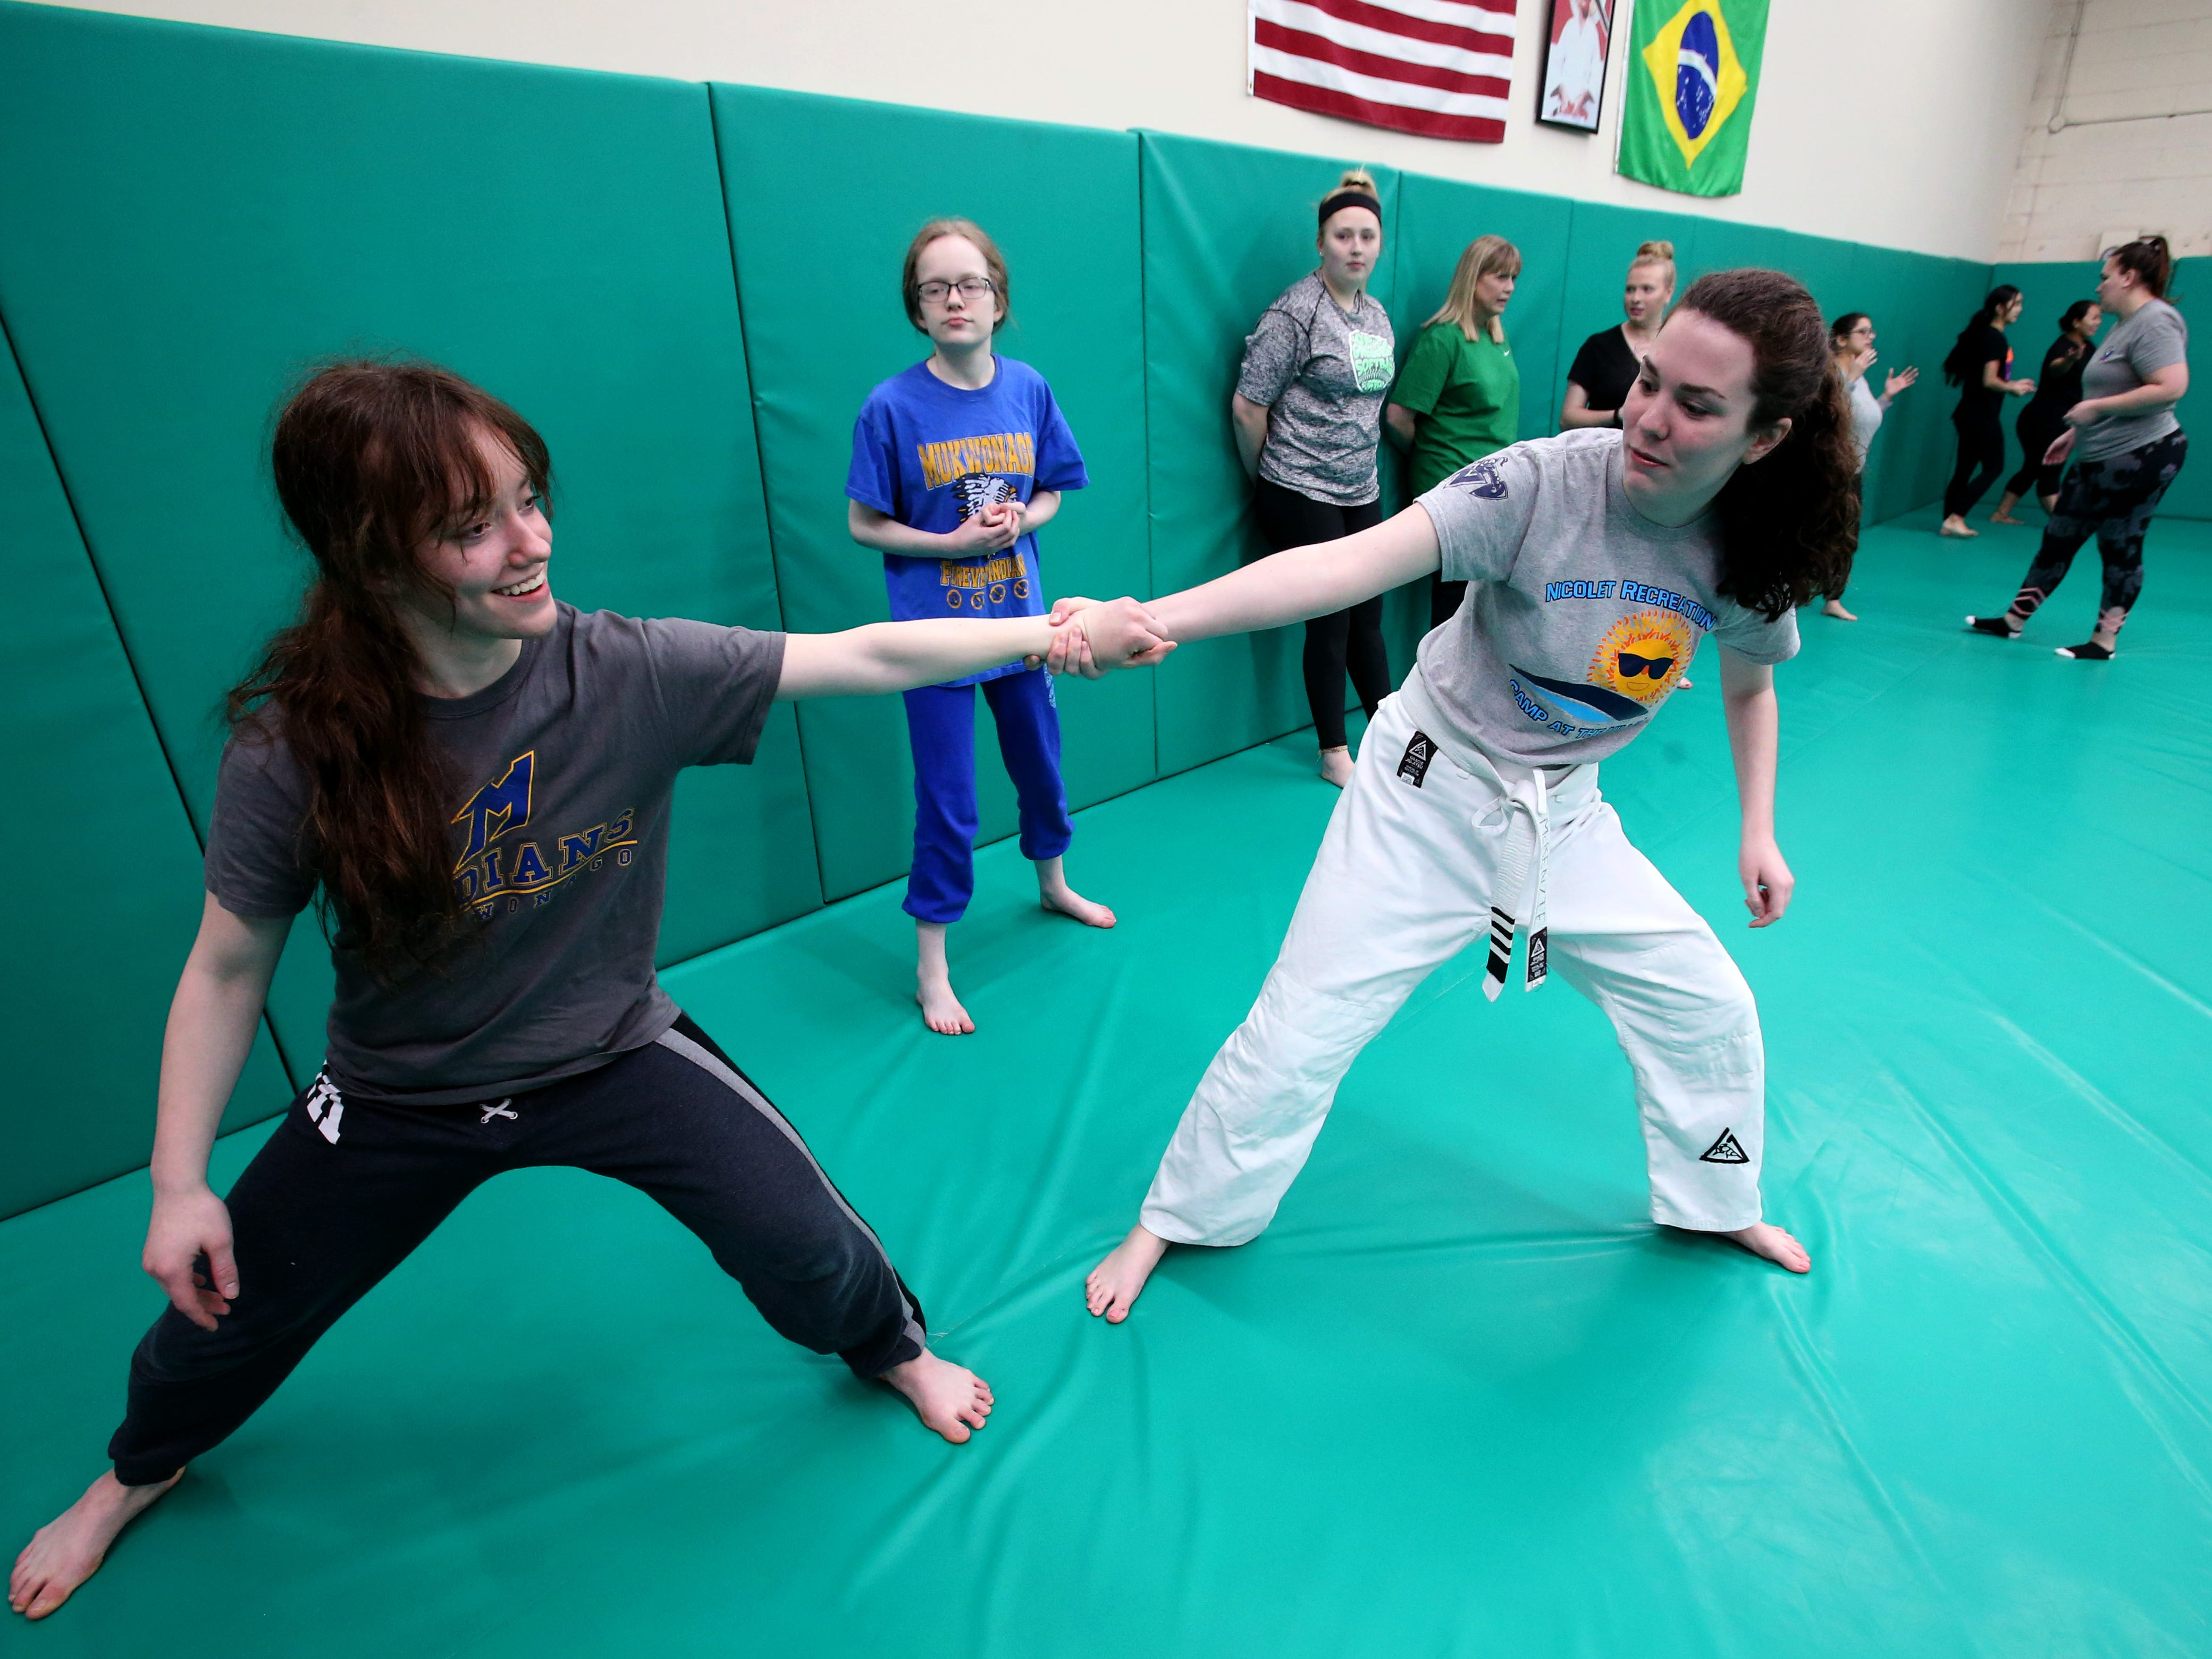 Morgan (left) and Maddy Vele of Mukwonago practice with McKenzie Clark (right) of Bayside a battle base stance if pulled or pushed during a self defense workshop for first-time students at Gracie Jiu-Jitsu Milwaukee in Wauwatosa on Jan. 5.